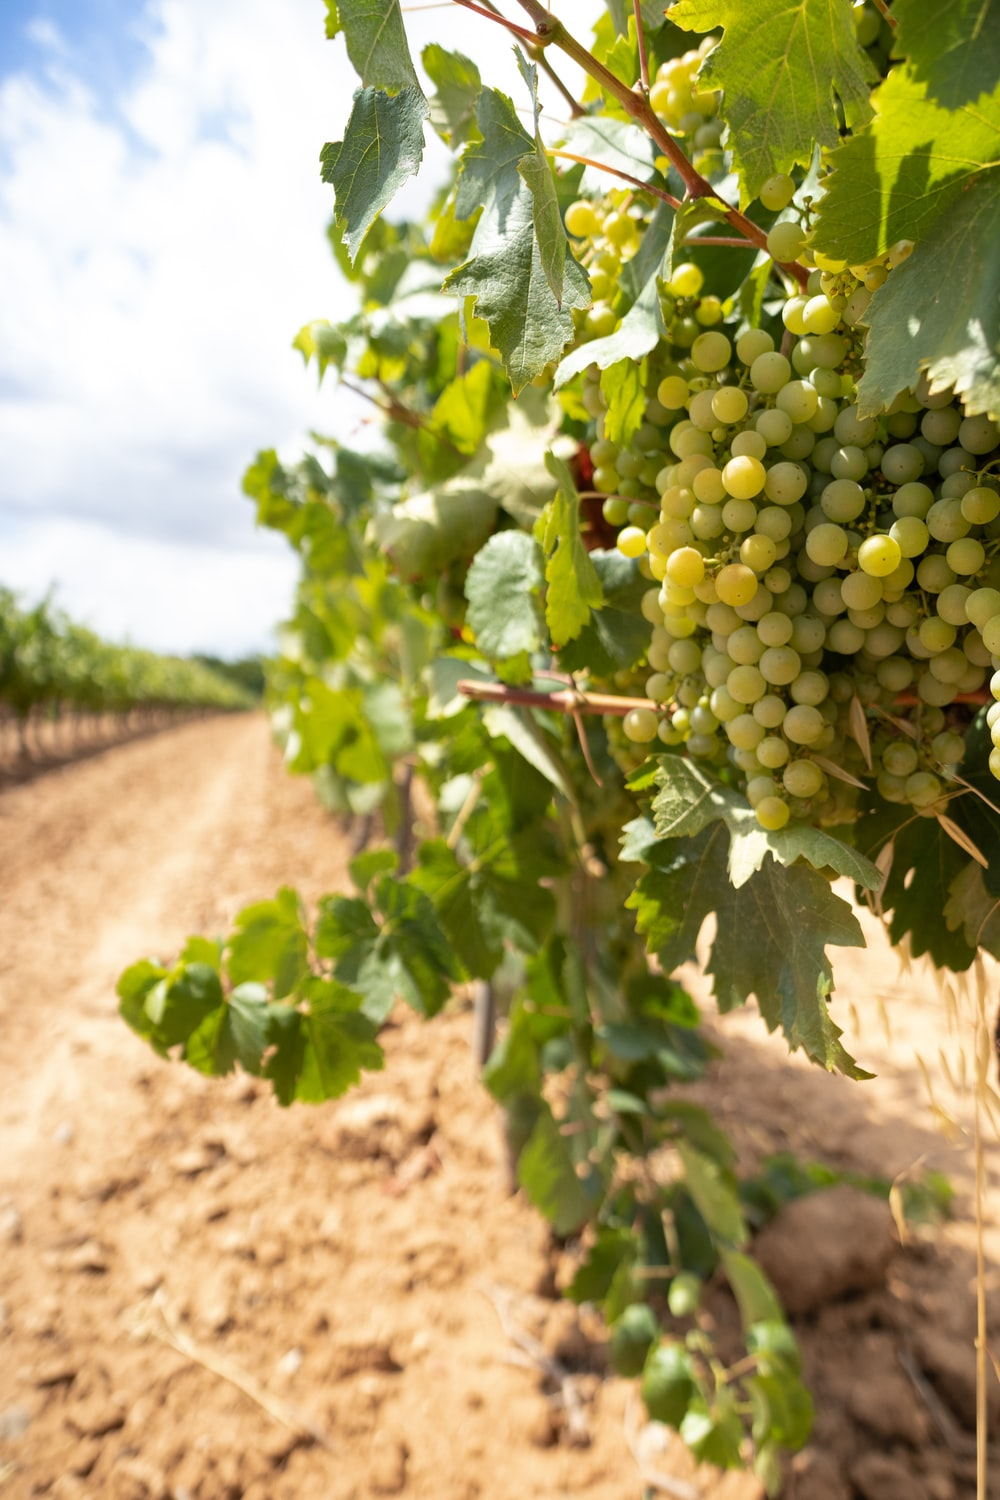 green grapes on brown soil during daytime